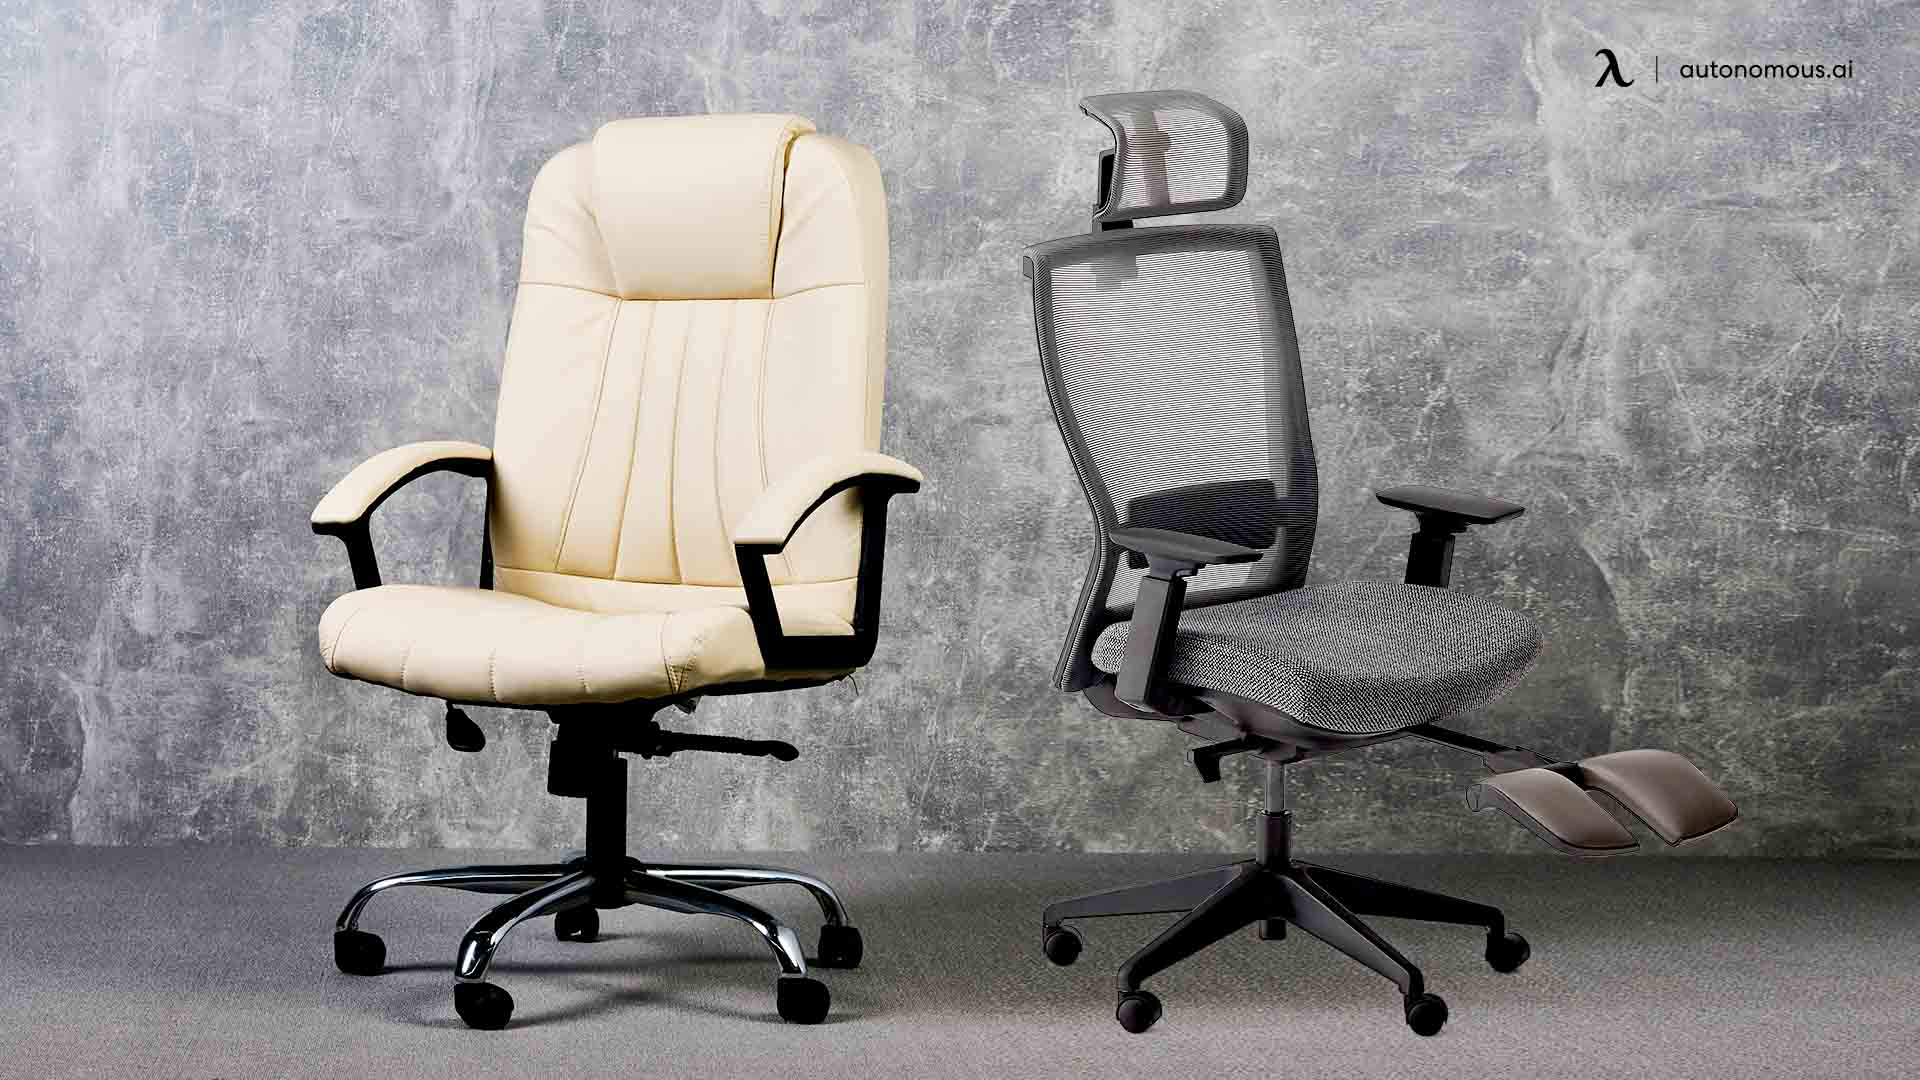 Leather Office Chairs Vs. Mesh Office Chairs